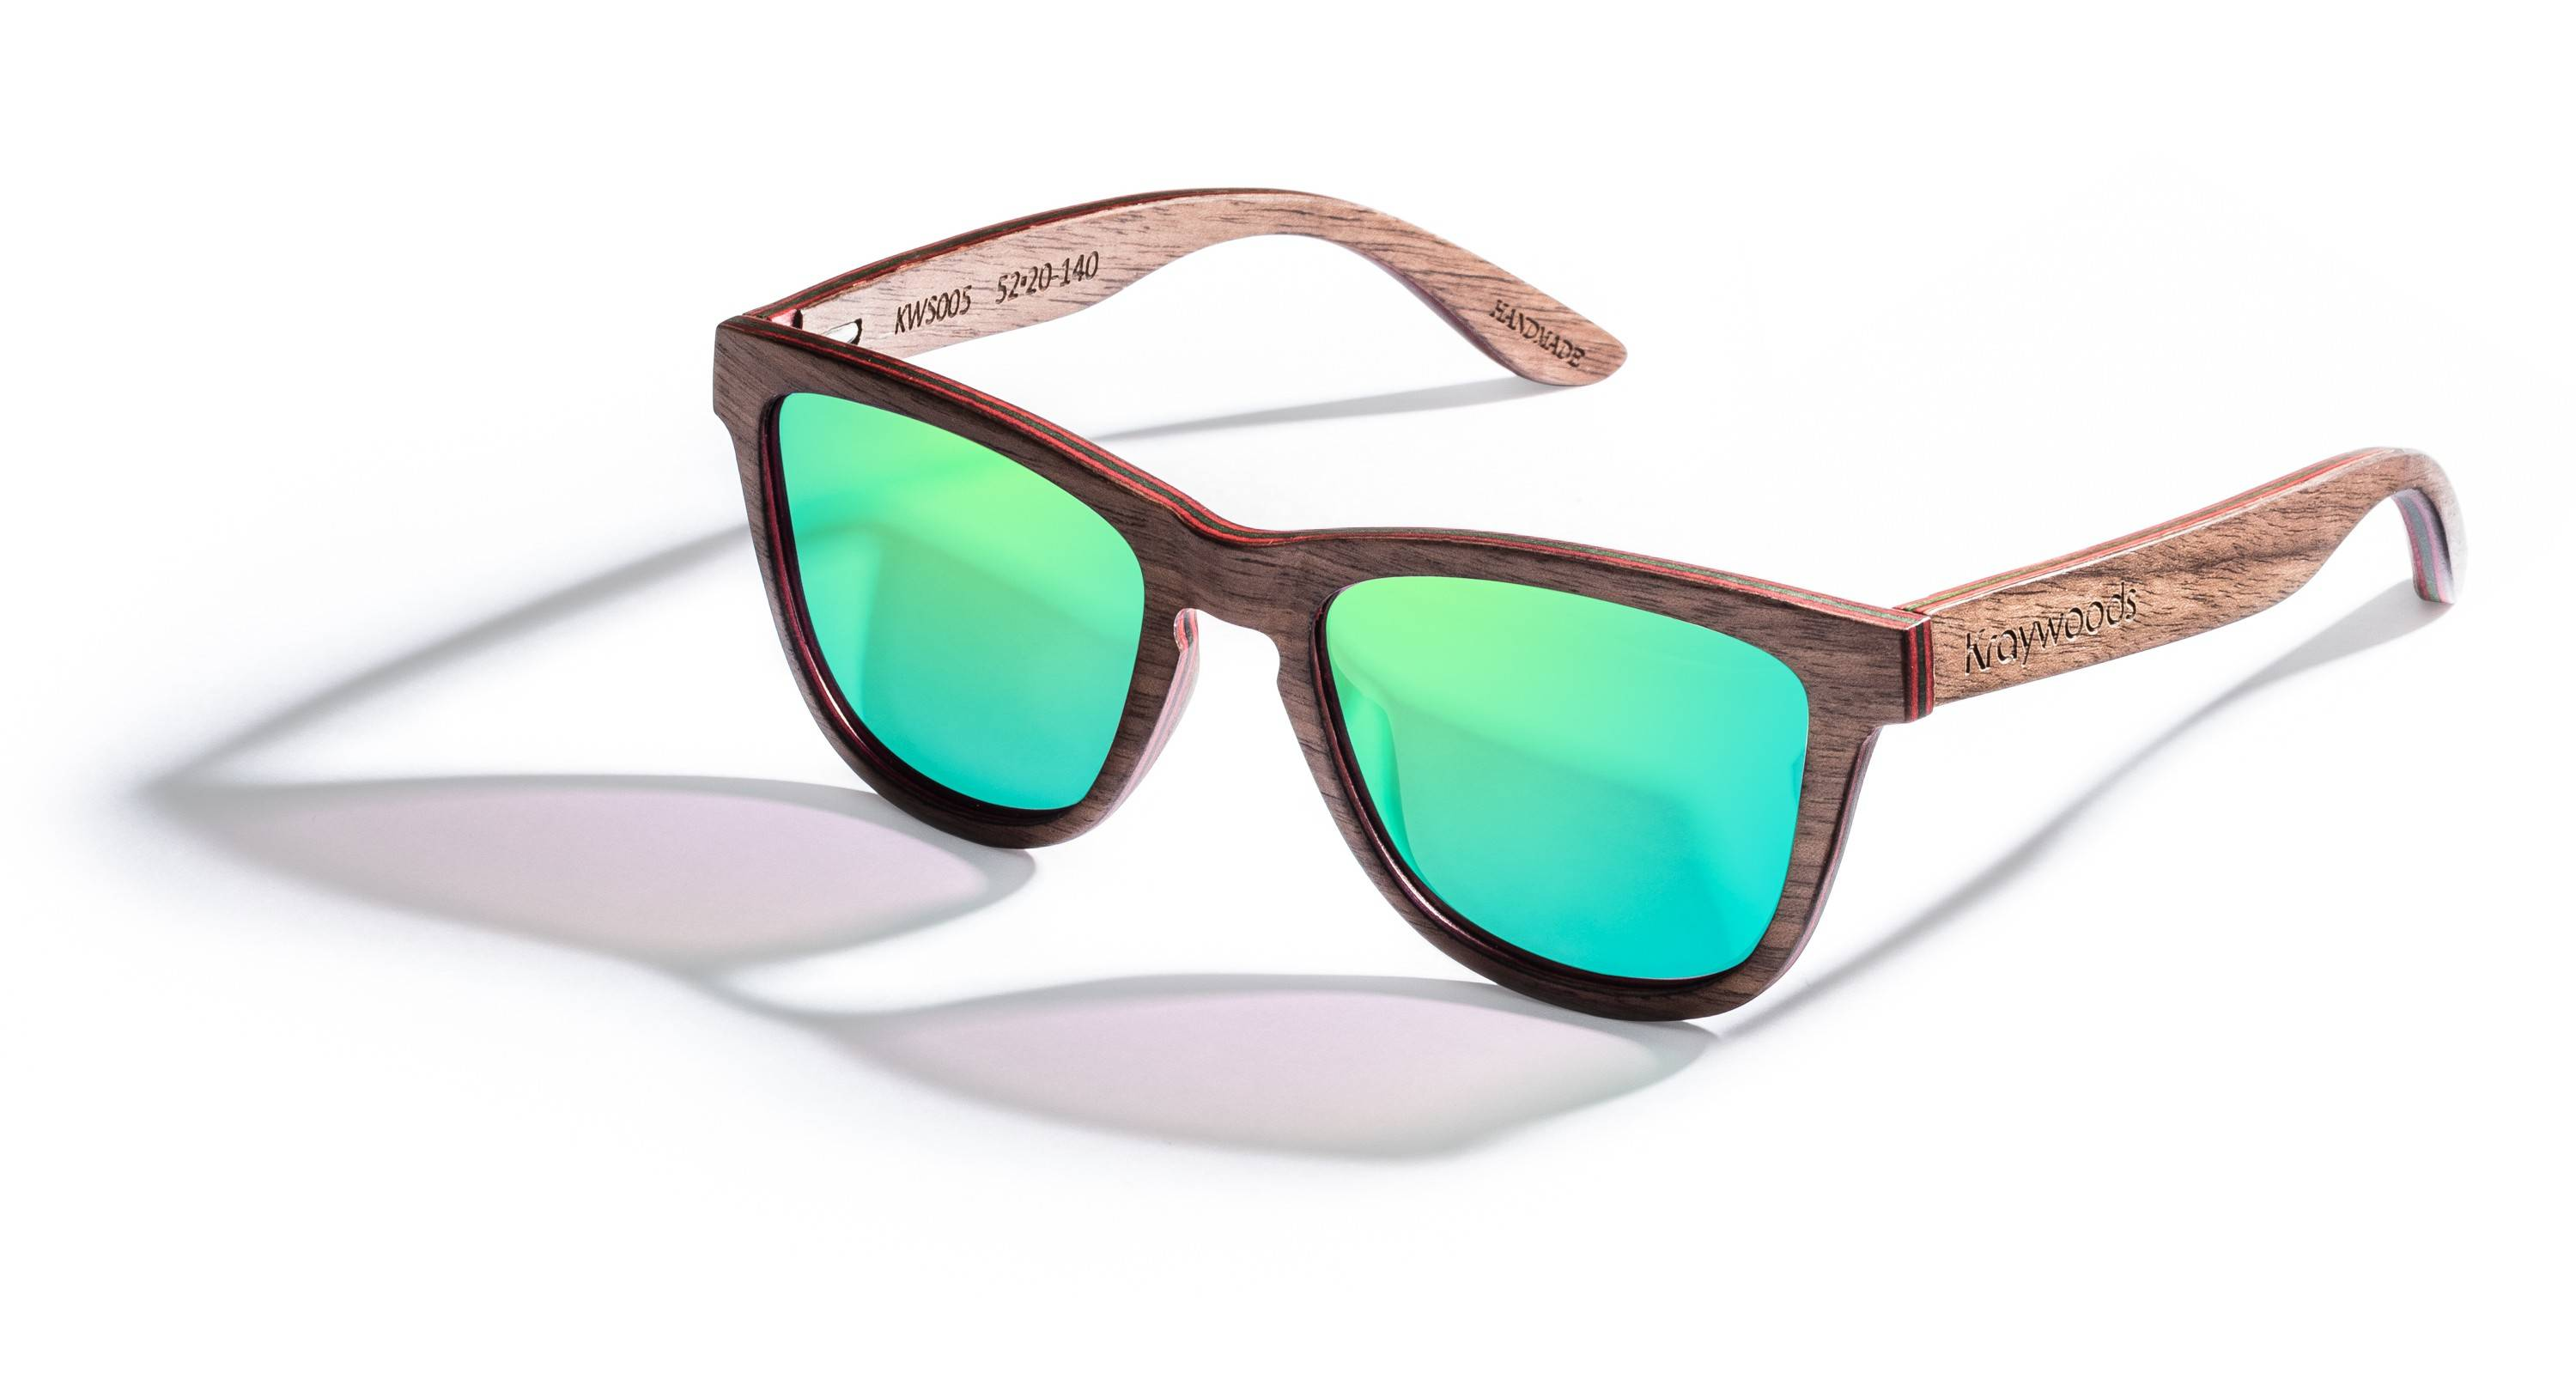 Kraywoods Racer, Classic Sunglasses made from Walnut wood with Polarized Green Lenses